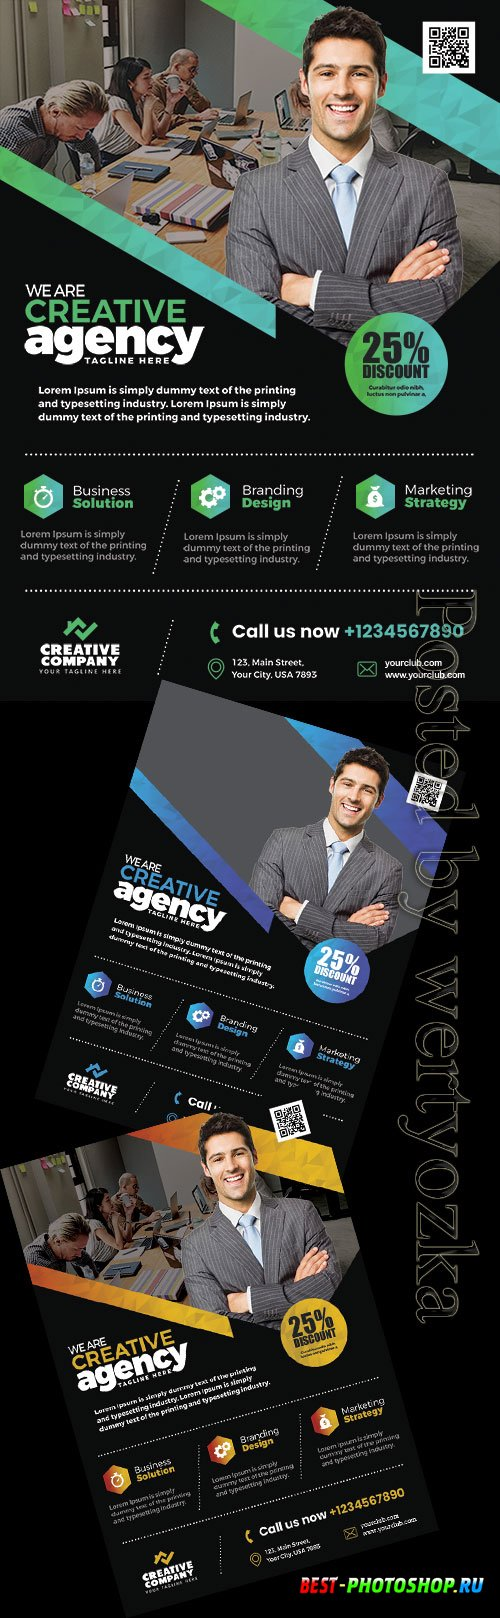 Business Promotion - Premium flyer psd template